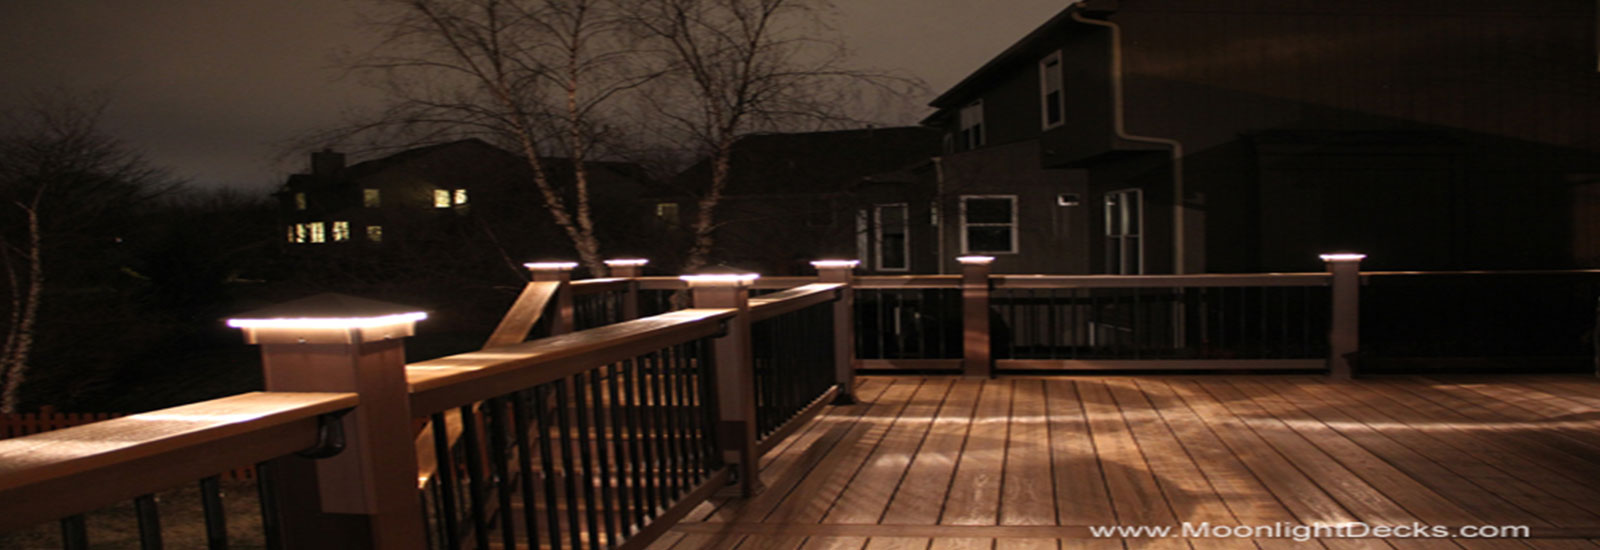 Low voltage deck lighting with lighted post caps.